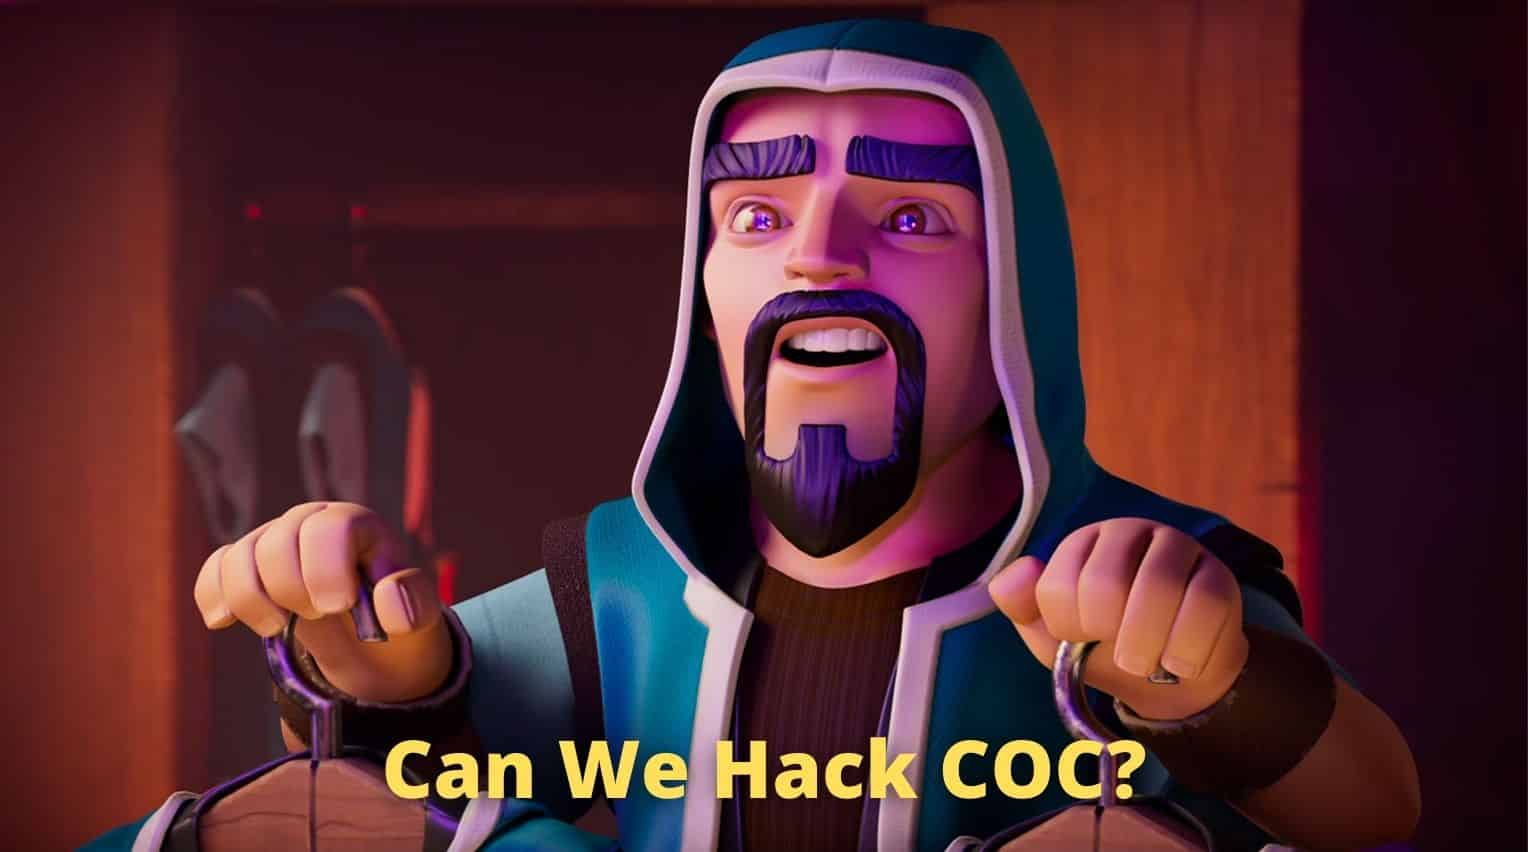 can we hack coc